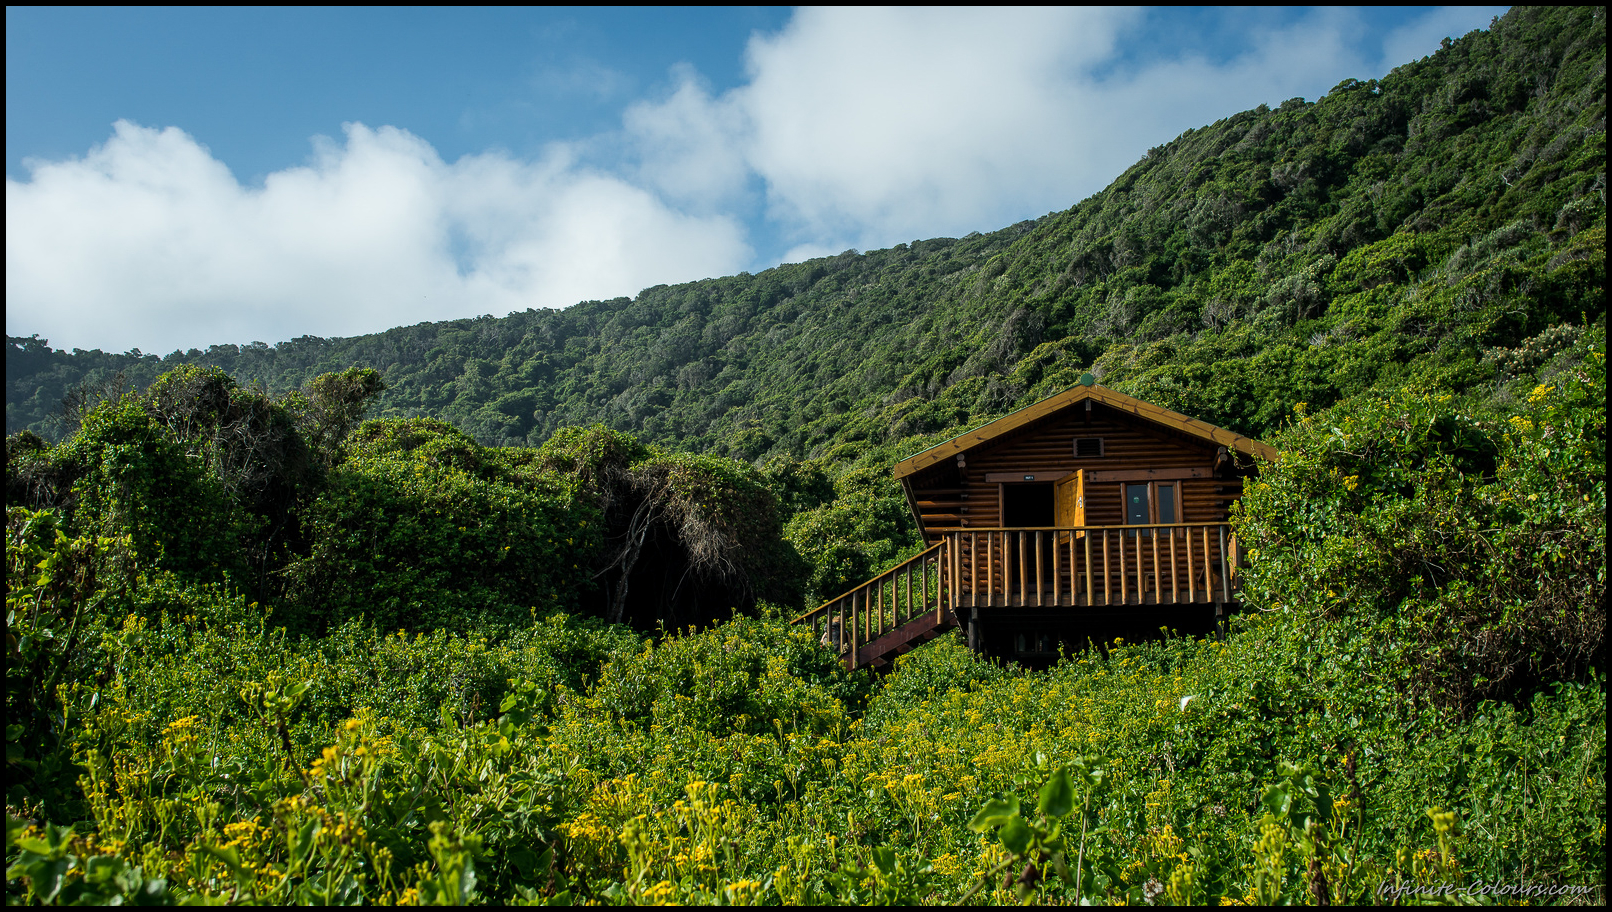 First home on the trail are the beautifully situated Ngubu huts